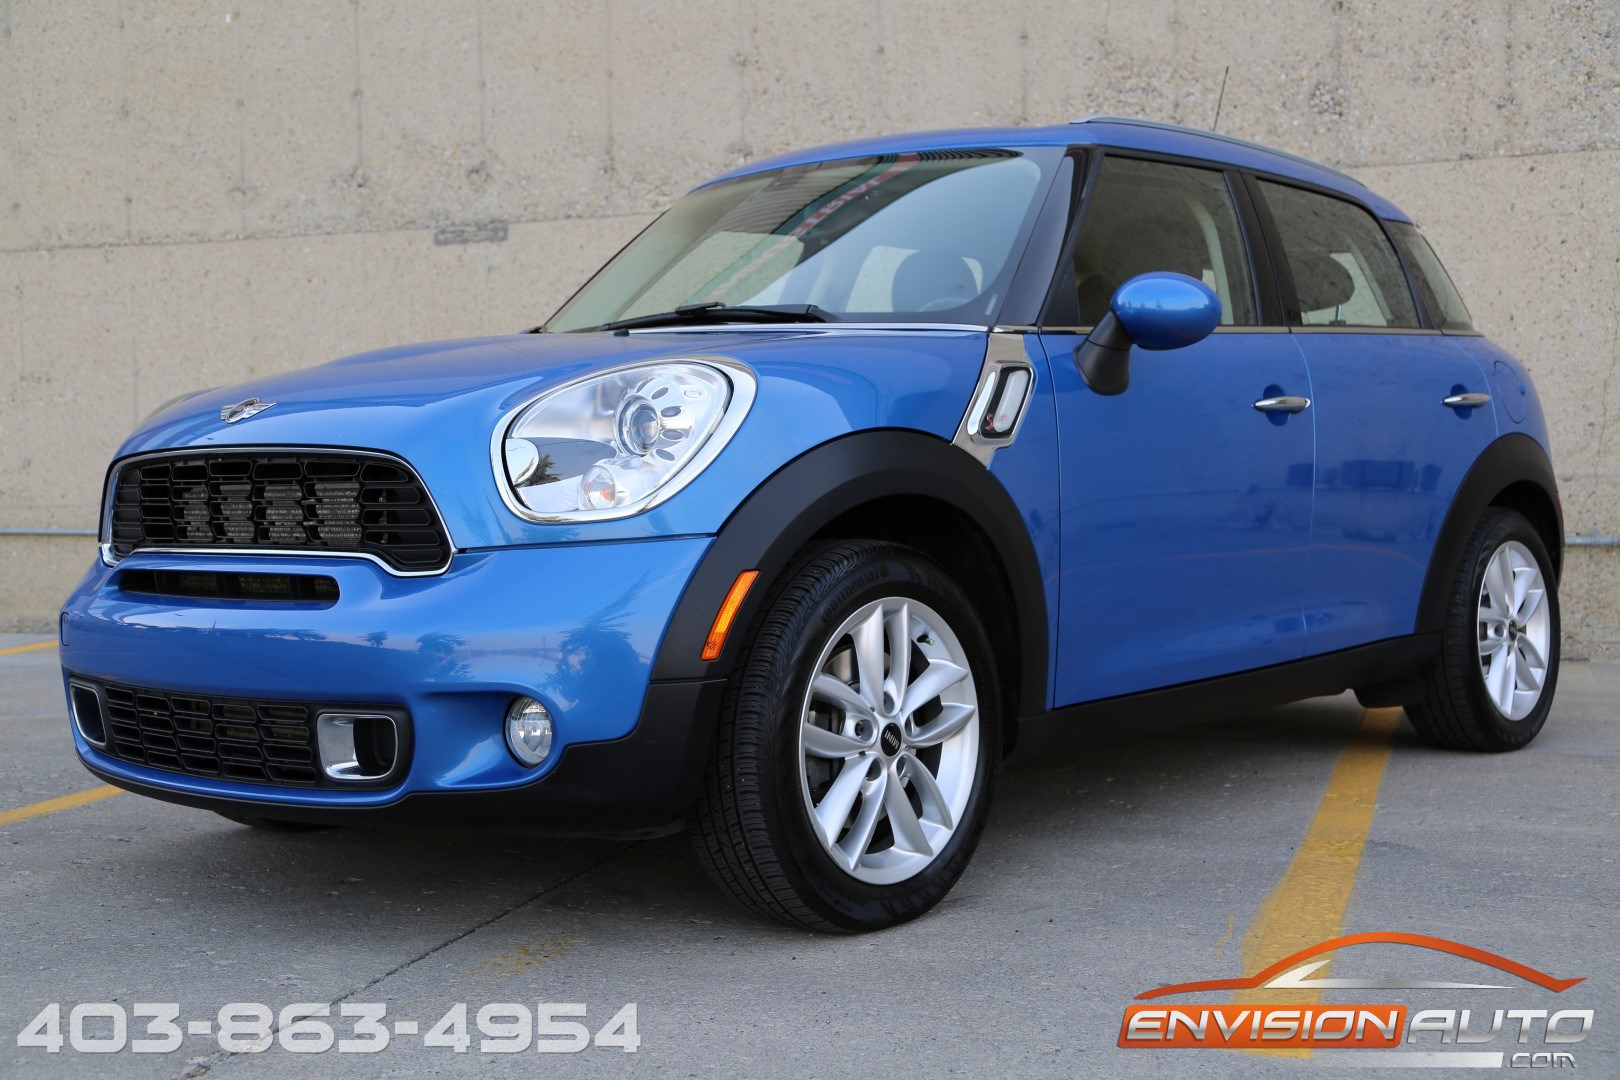 2011 mini cooper s countryman spotless history only 66k kms envision auto calgary highline. Black Bedroom Furniture Sets. Home Design Ideas